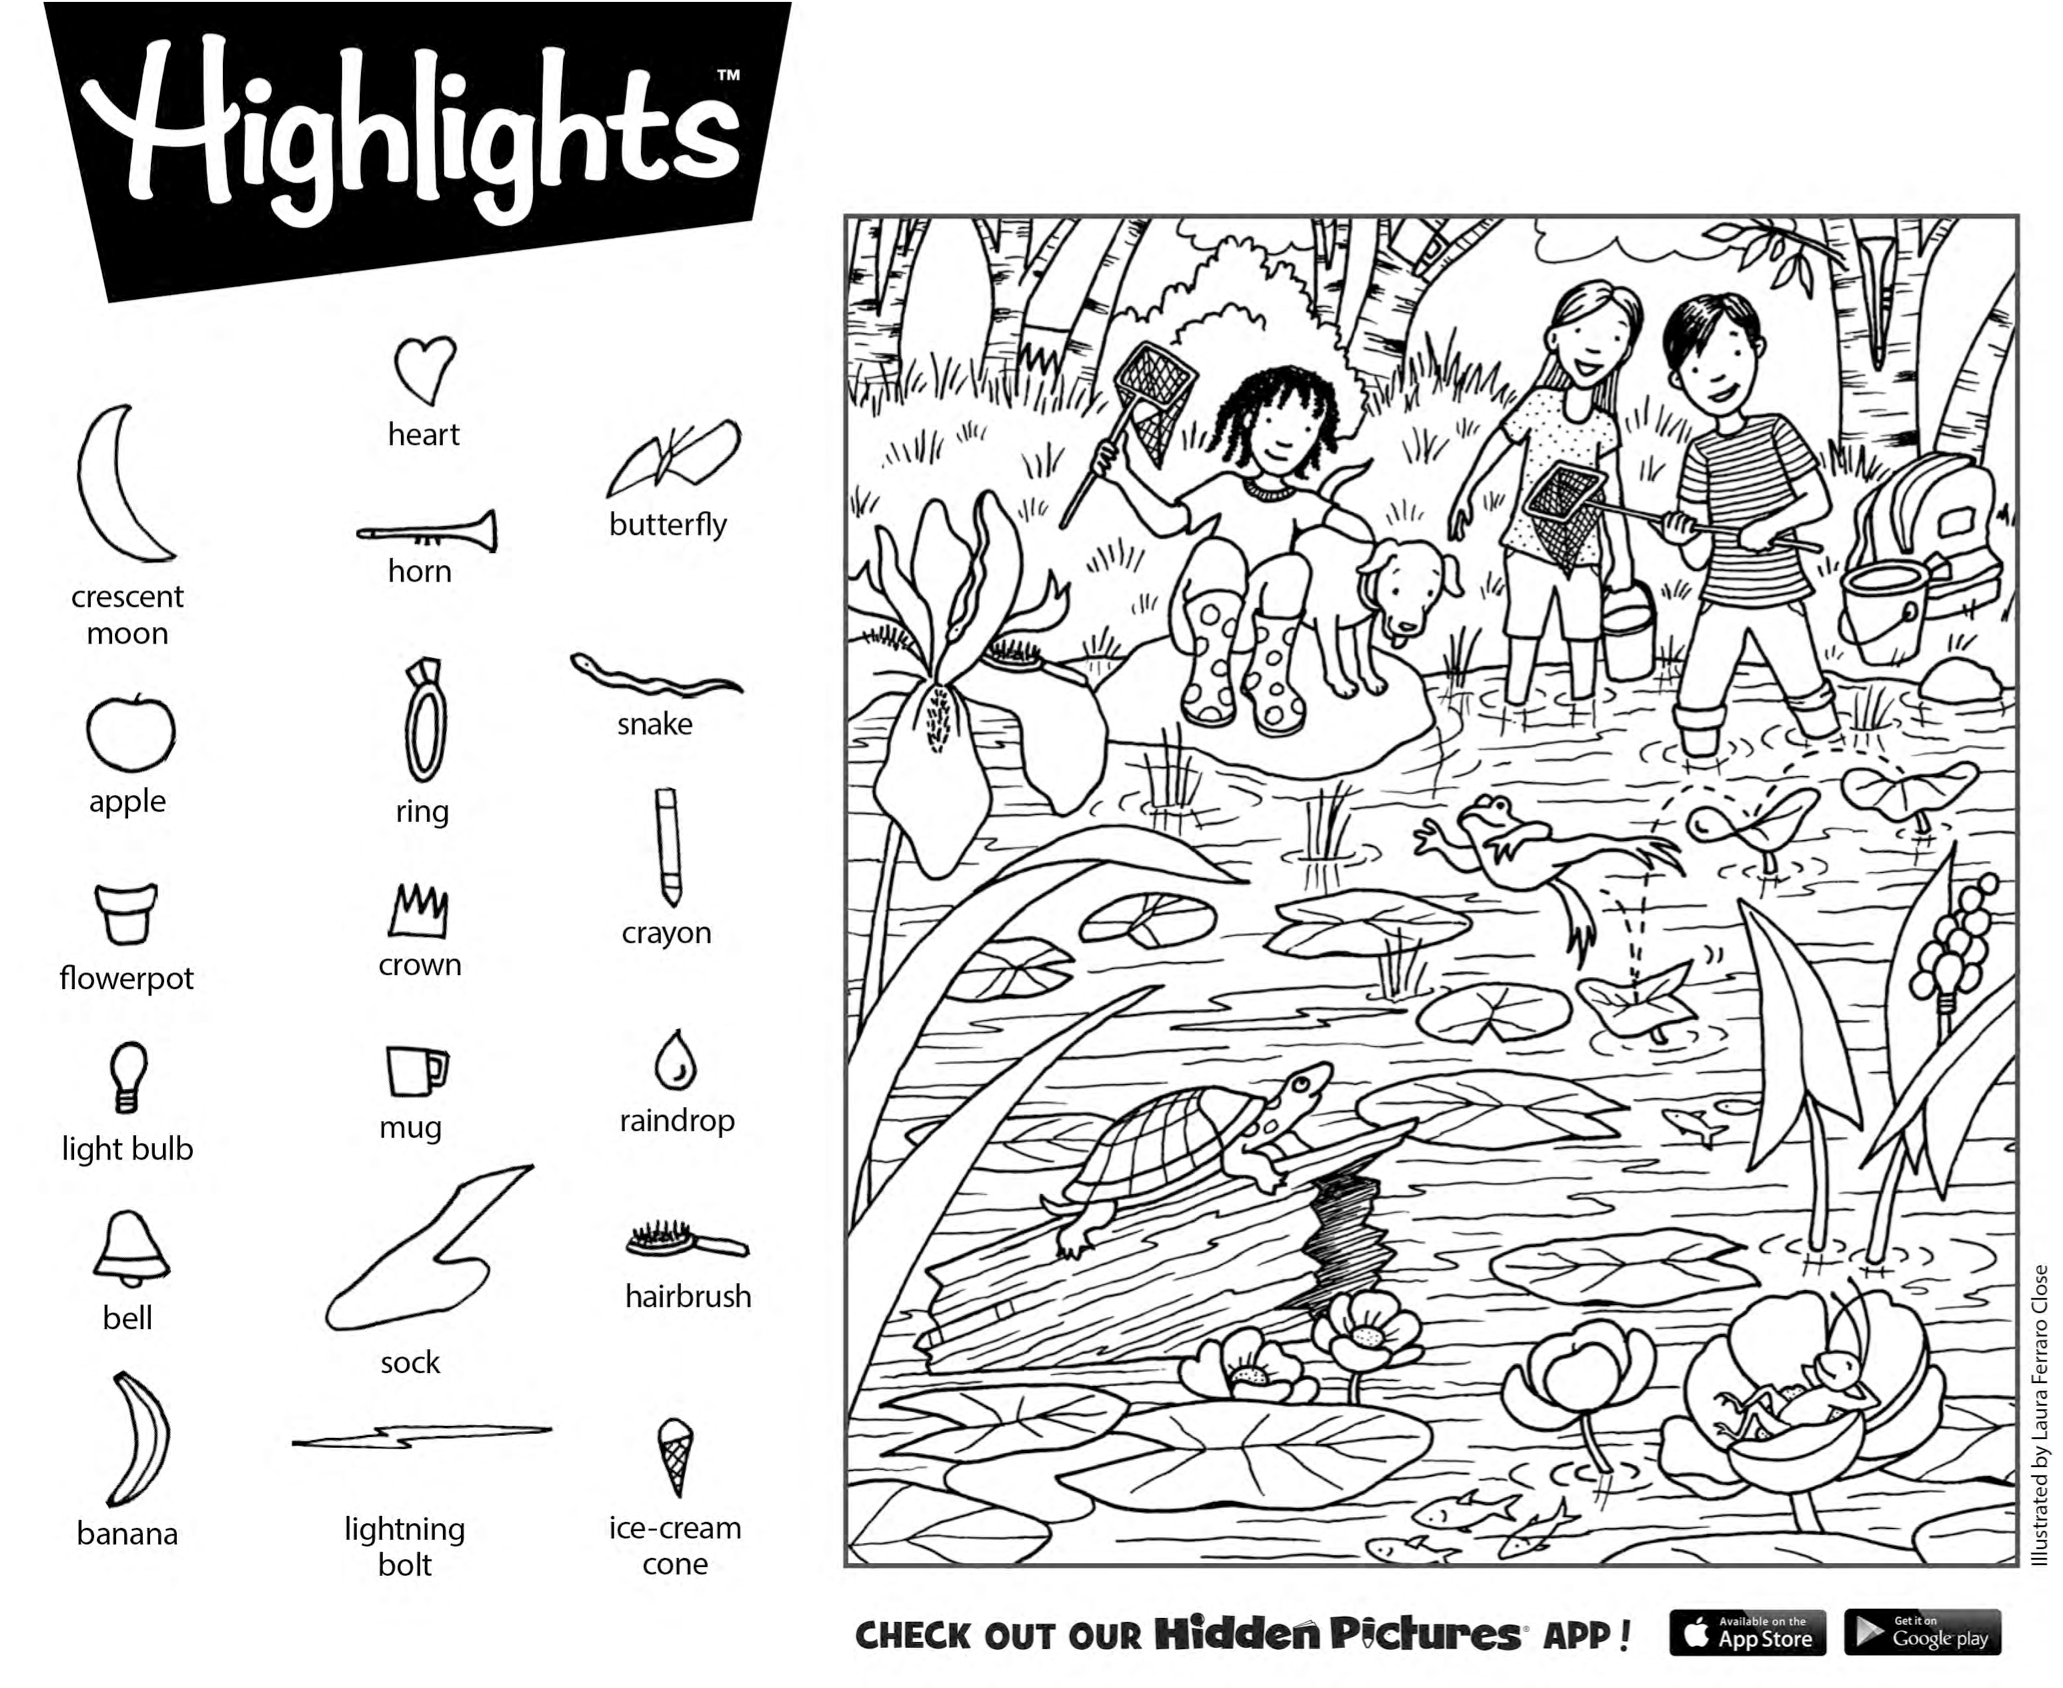 download this free printable hidden pictures puzzle from highlights for children - Free Printable Hidden Pictures